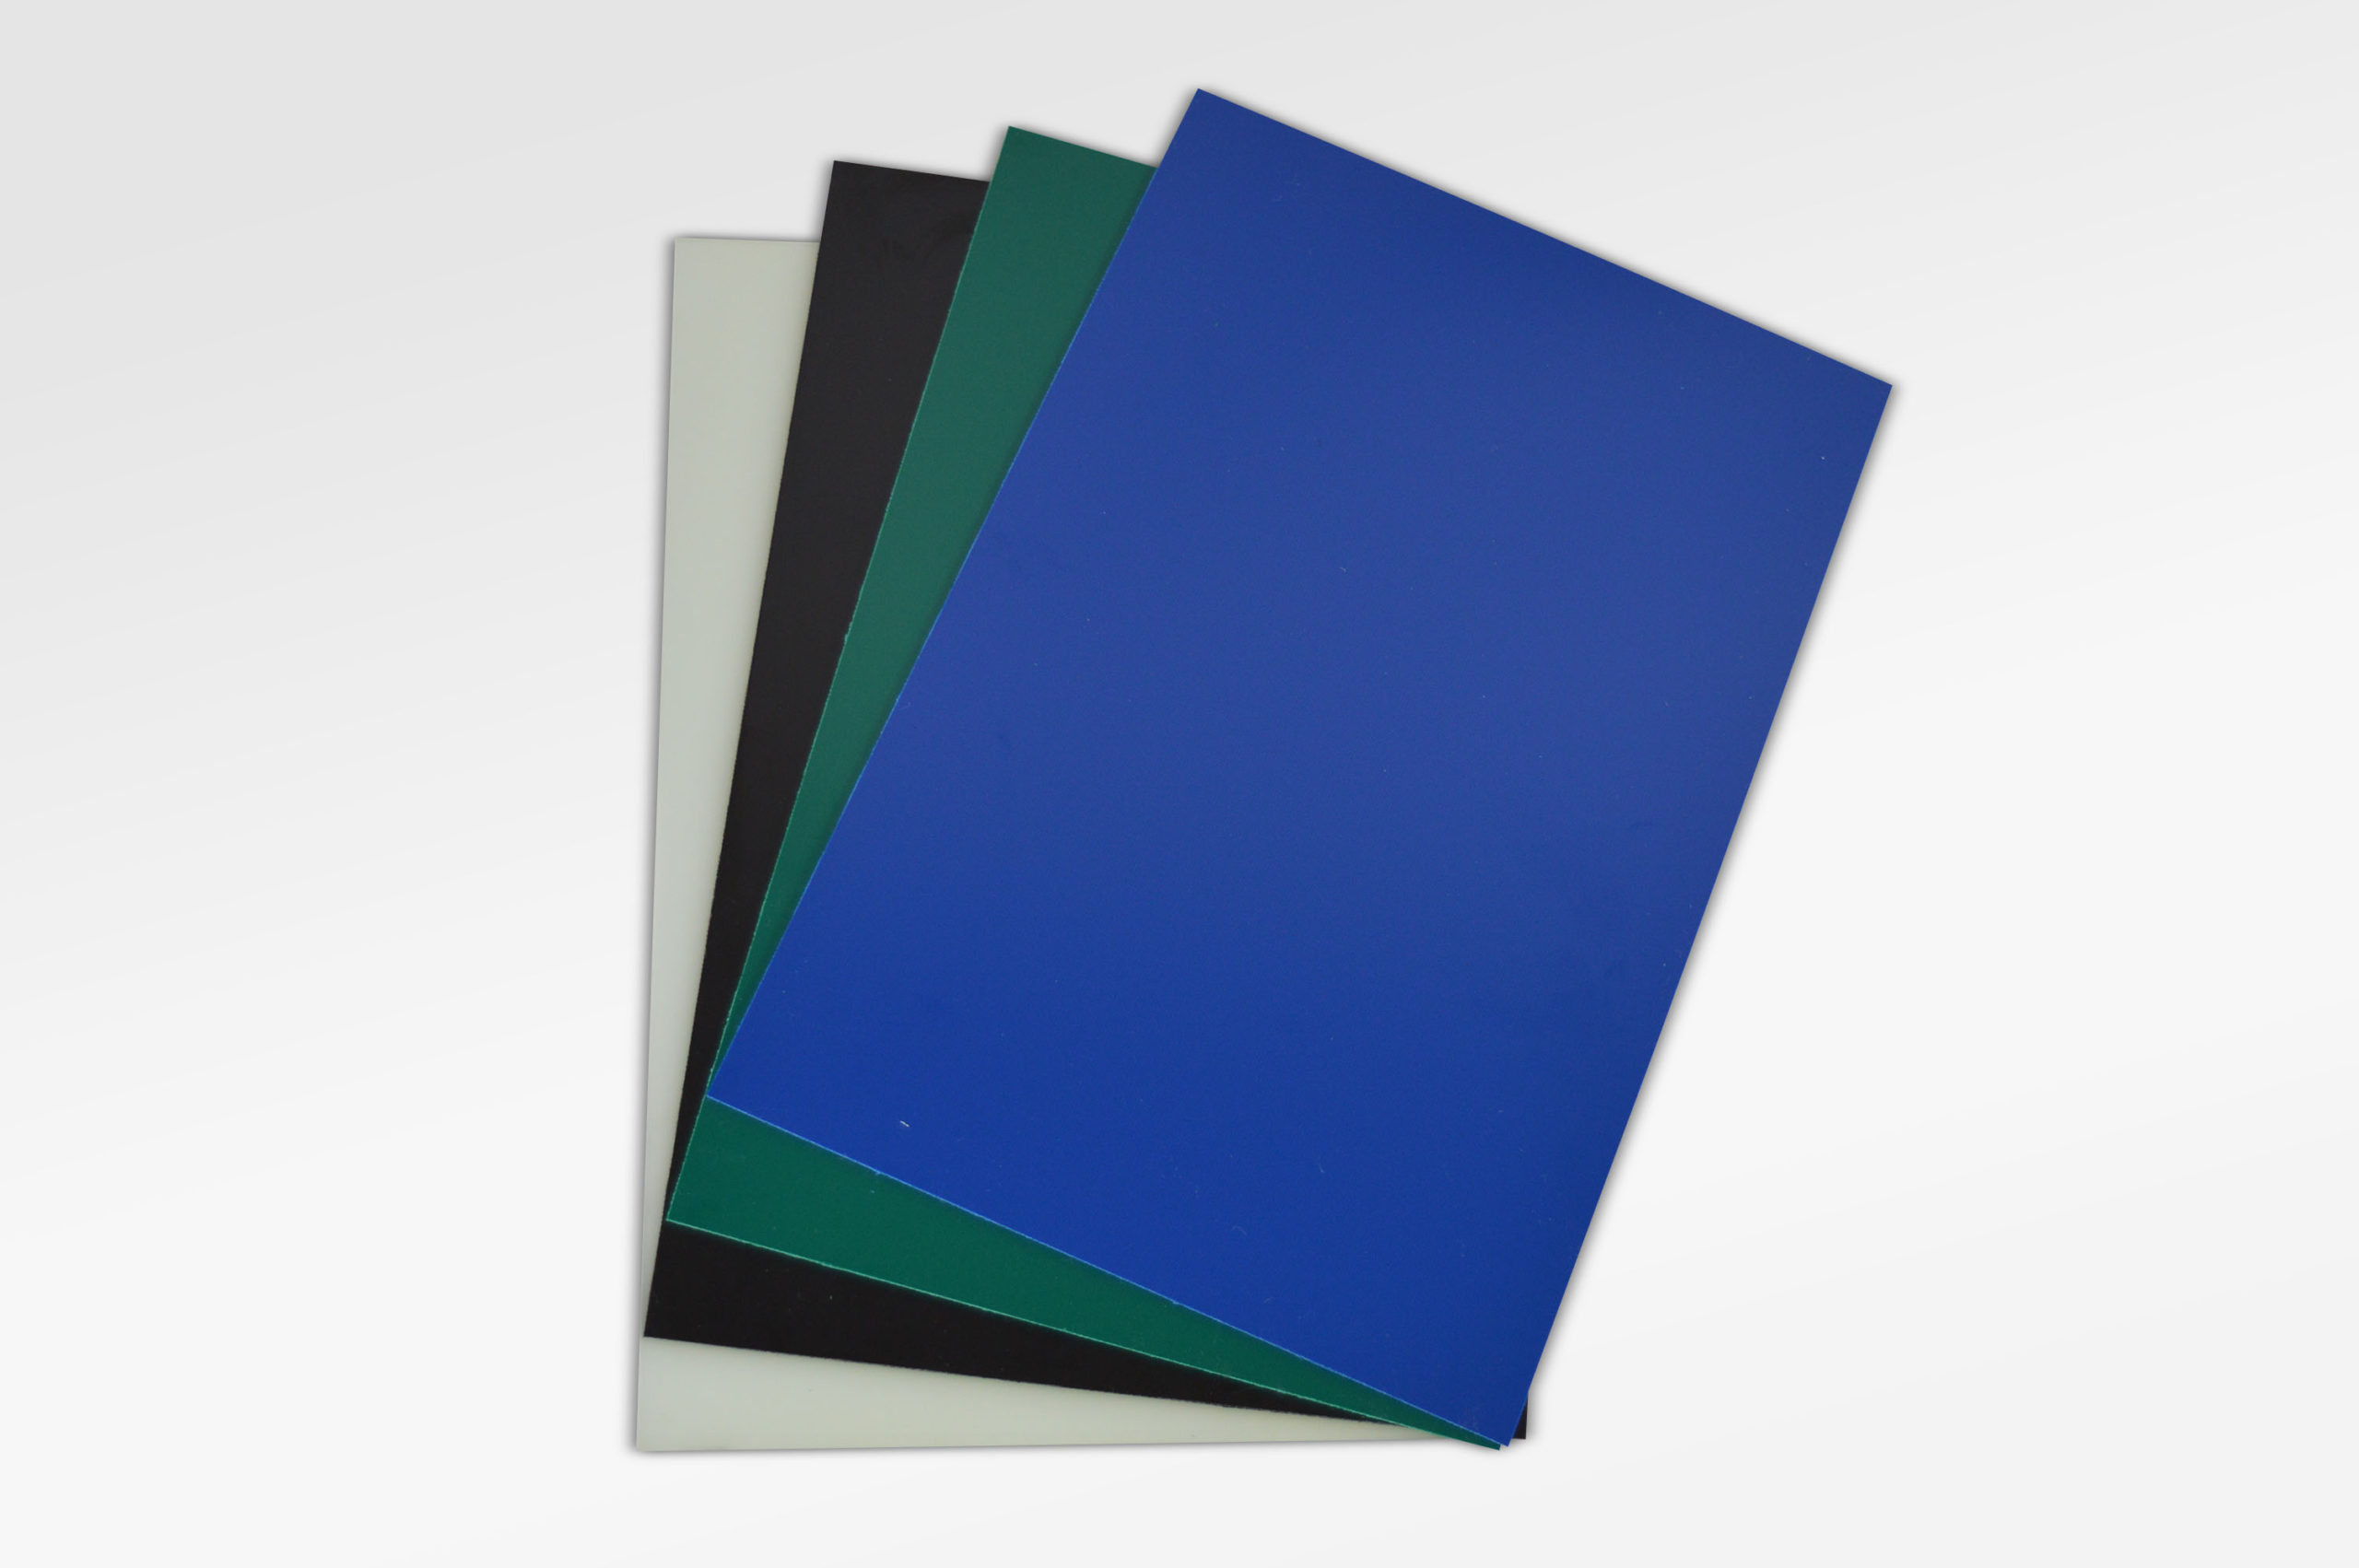 Fr4 G10 Plain Expoxy Glass Fibre Grp Laminate Sheet Material Fortex Engineering Ltd